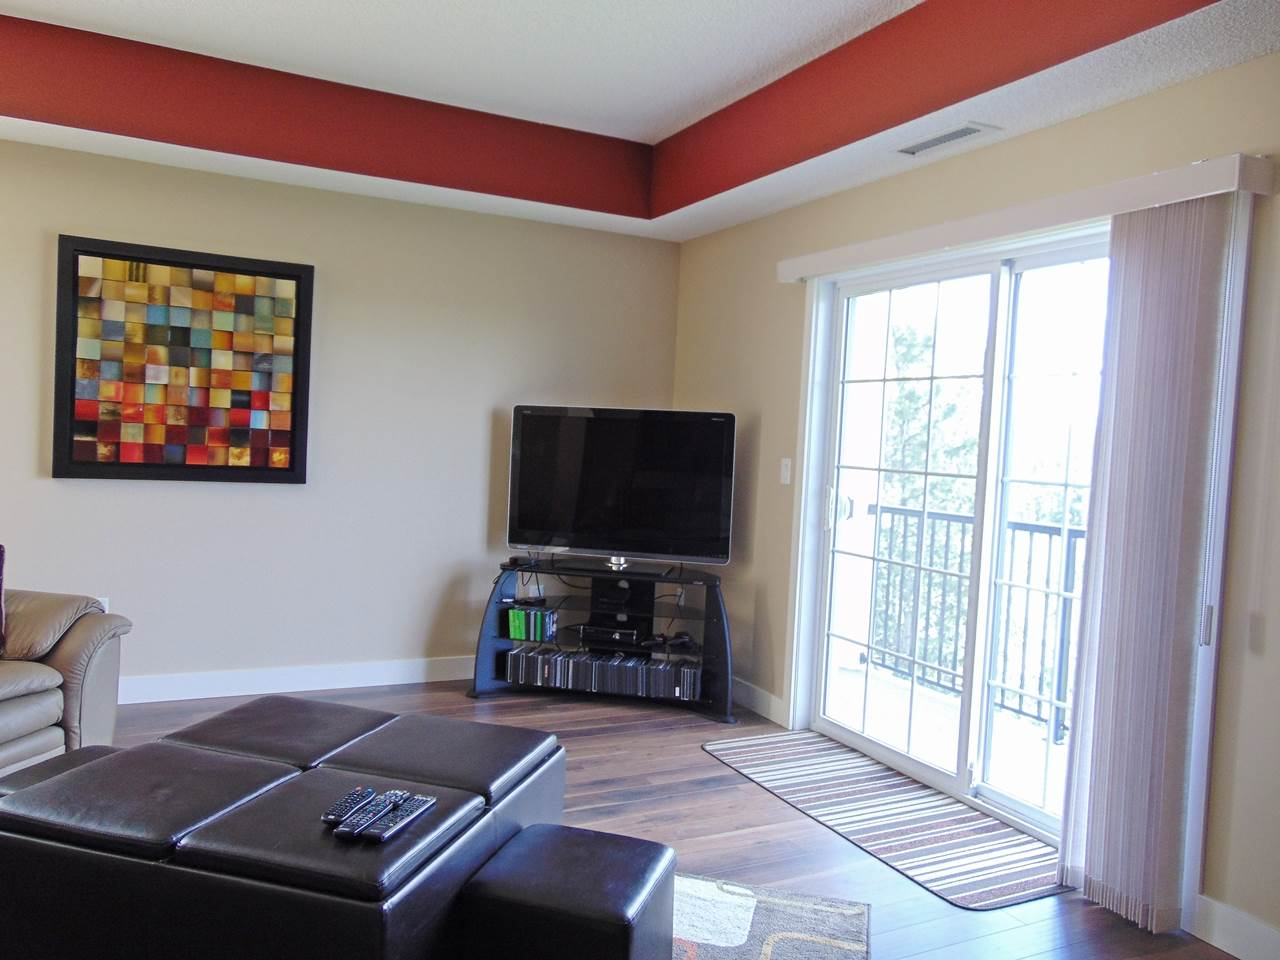 Photo 14: 203 4922 52 Street: Gibbons Condo for sale : MLS® # E4071334